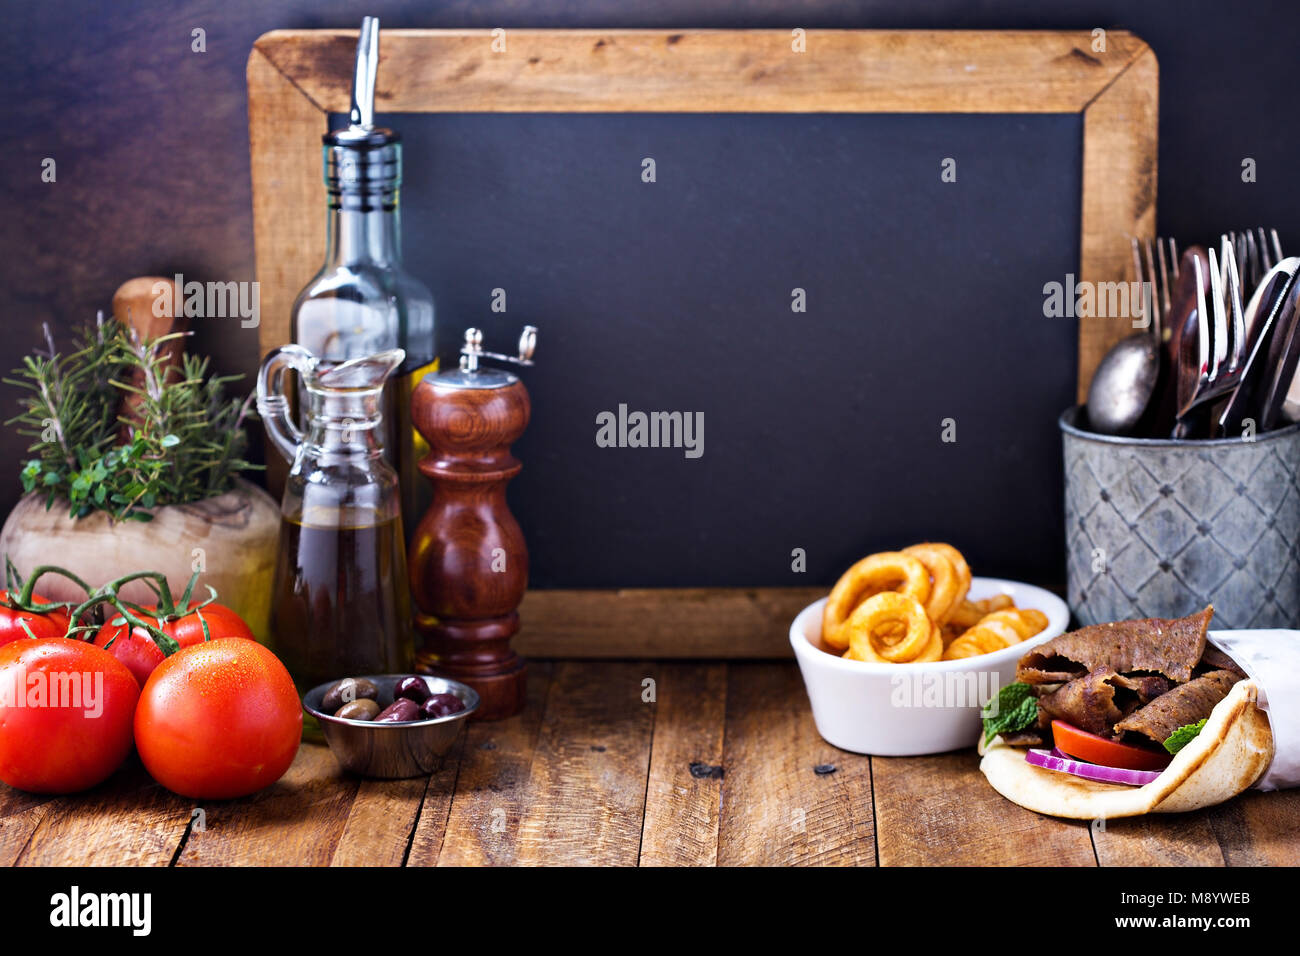 Concept alimentaire grec background Photo Stock